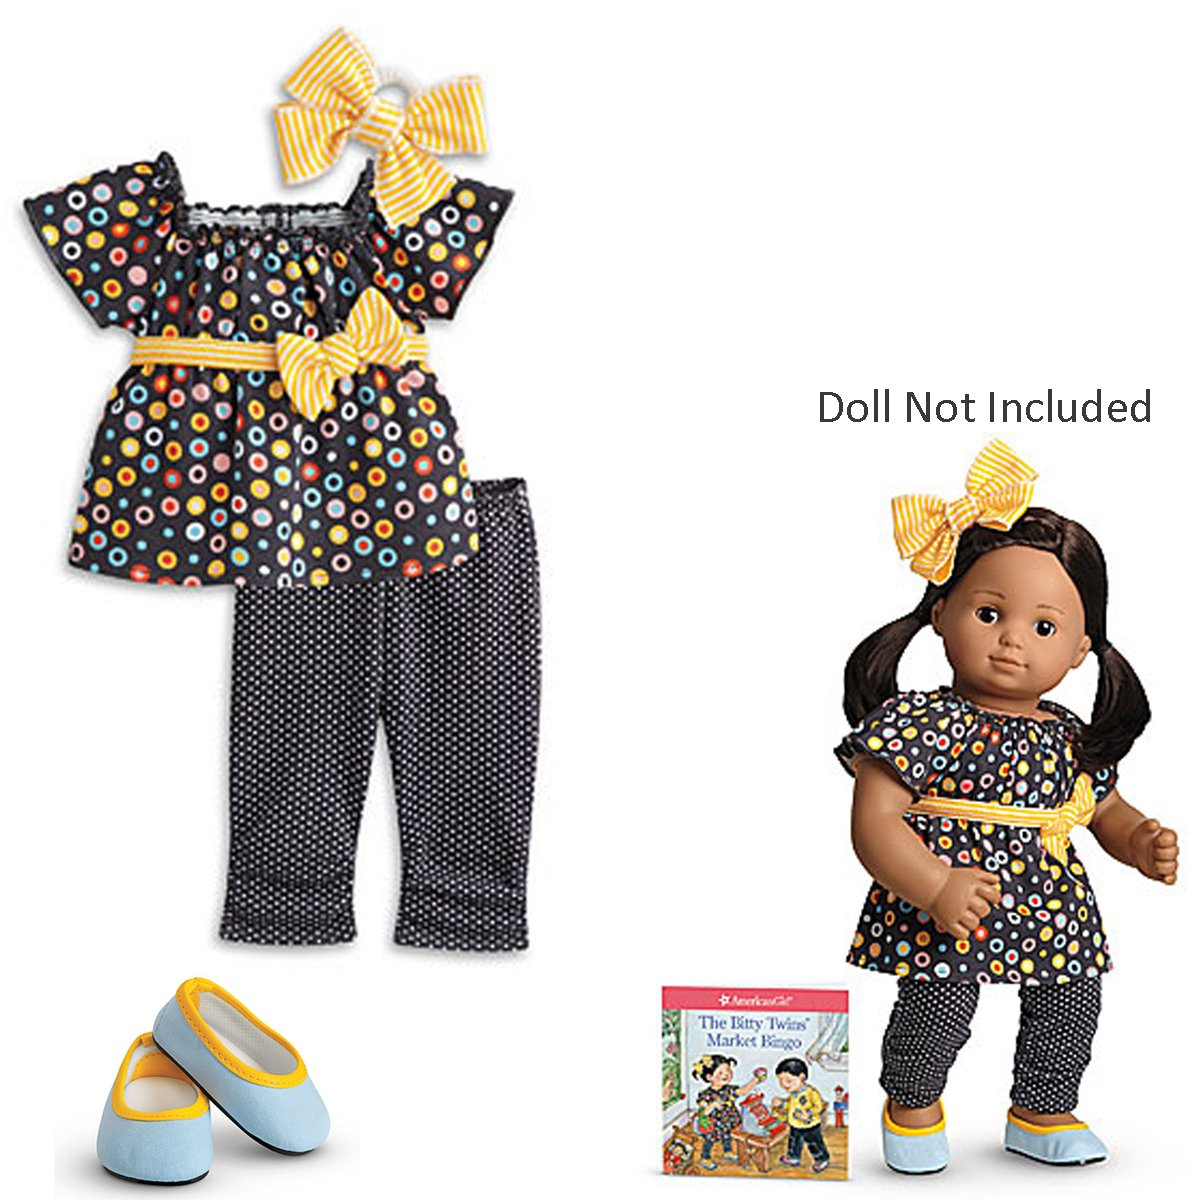 American Girl Bitty Baby Twins Polka-Dot Day Dress for 15' Dolls (Doll Not Included) by Mattel